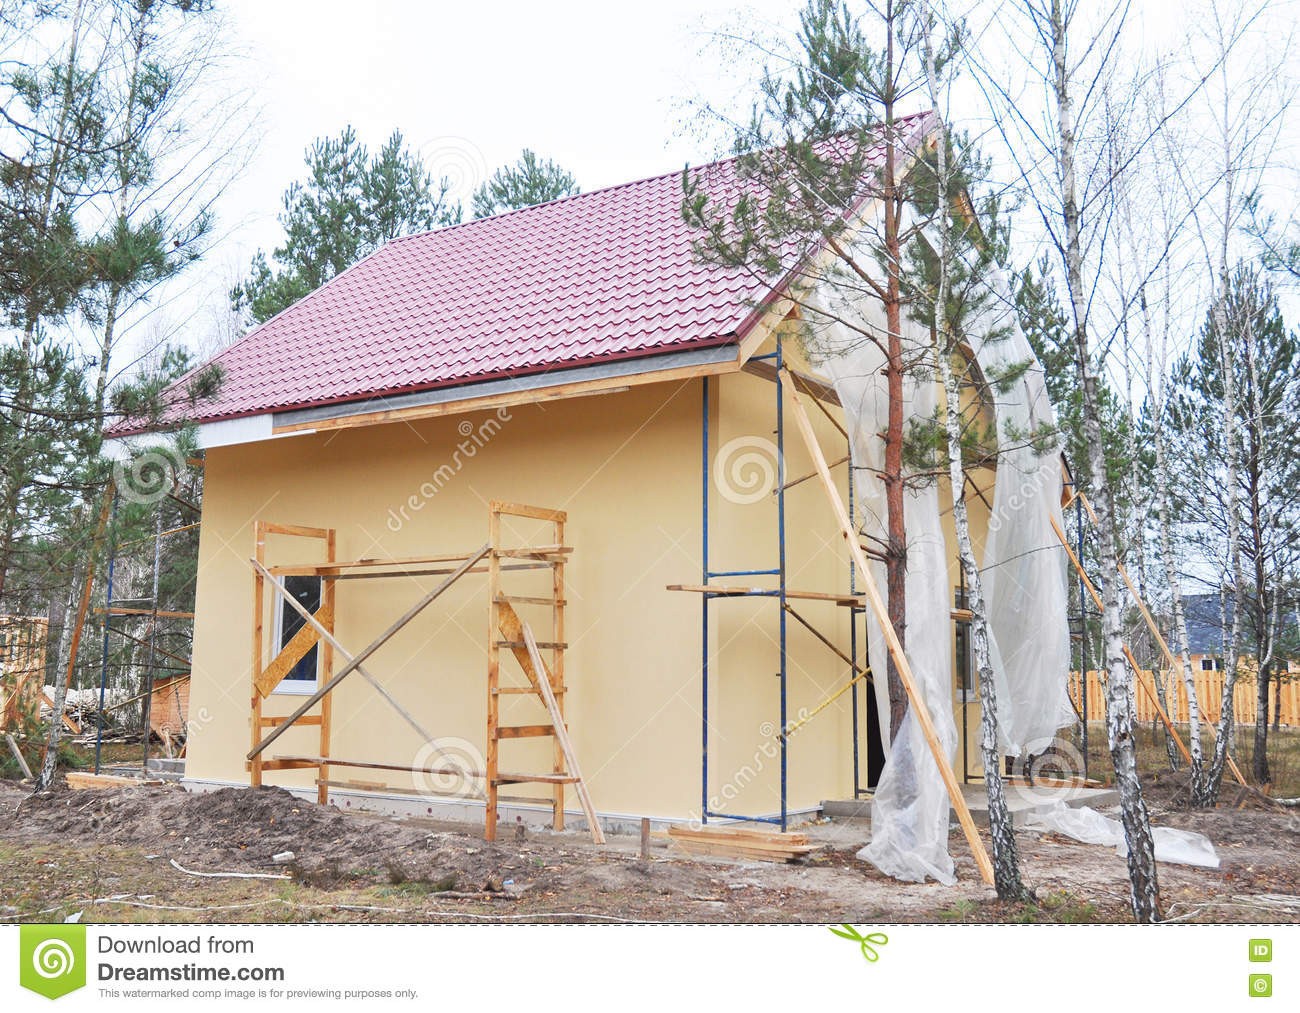 Painting and plastering exterior house scaffolding wall for Time saver details for exterior wall design